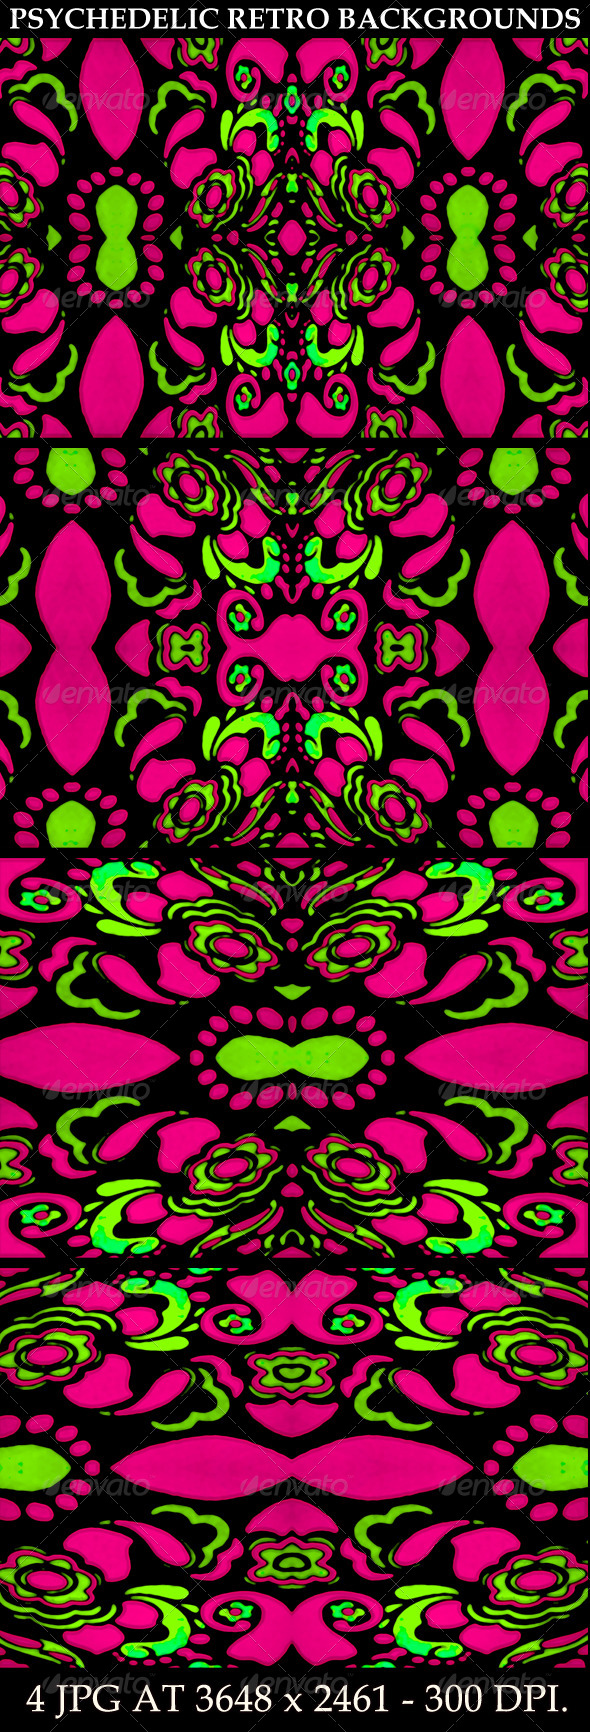 4 Psychedelic Retro Ornament Backgrounds - Flourishes / Swirls Decorative